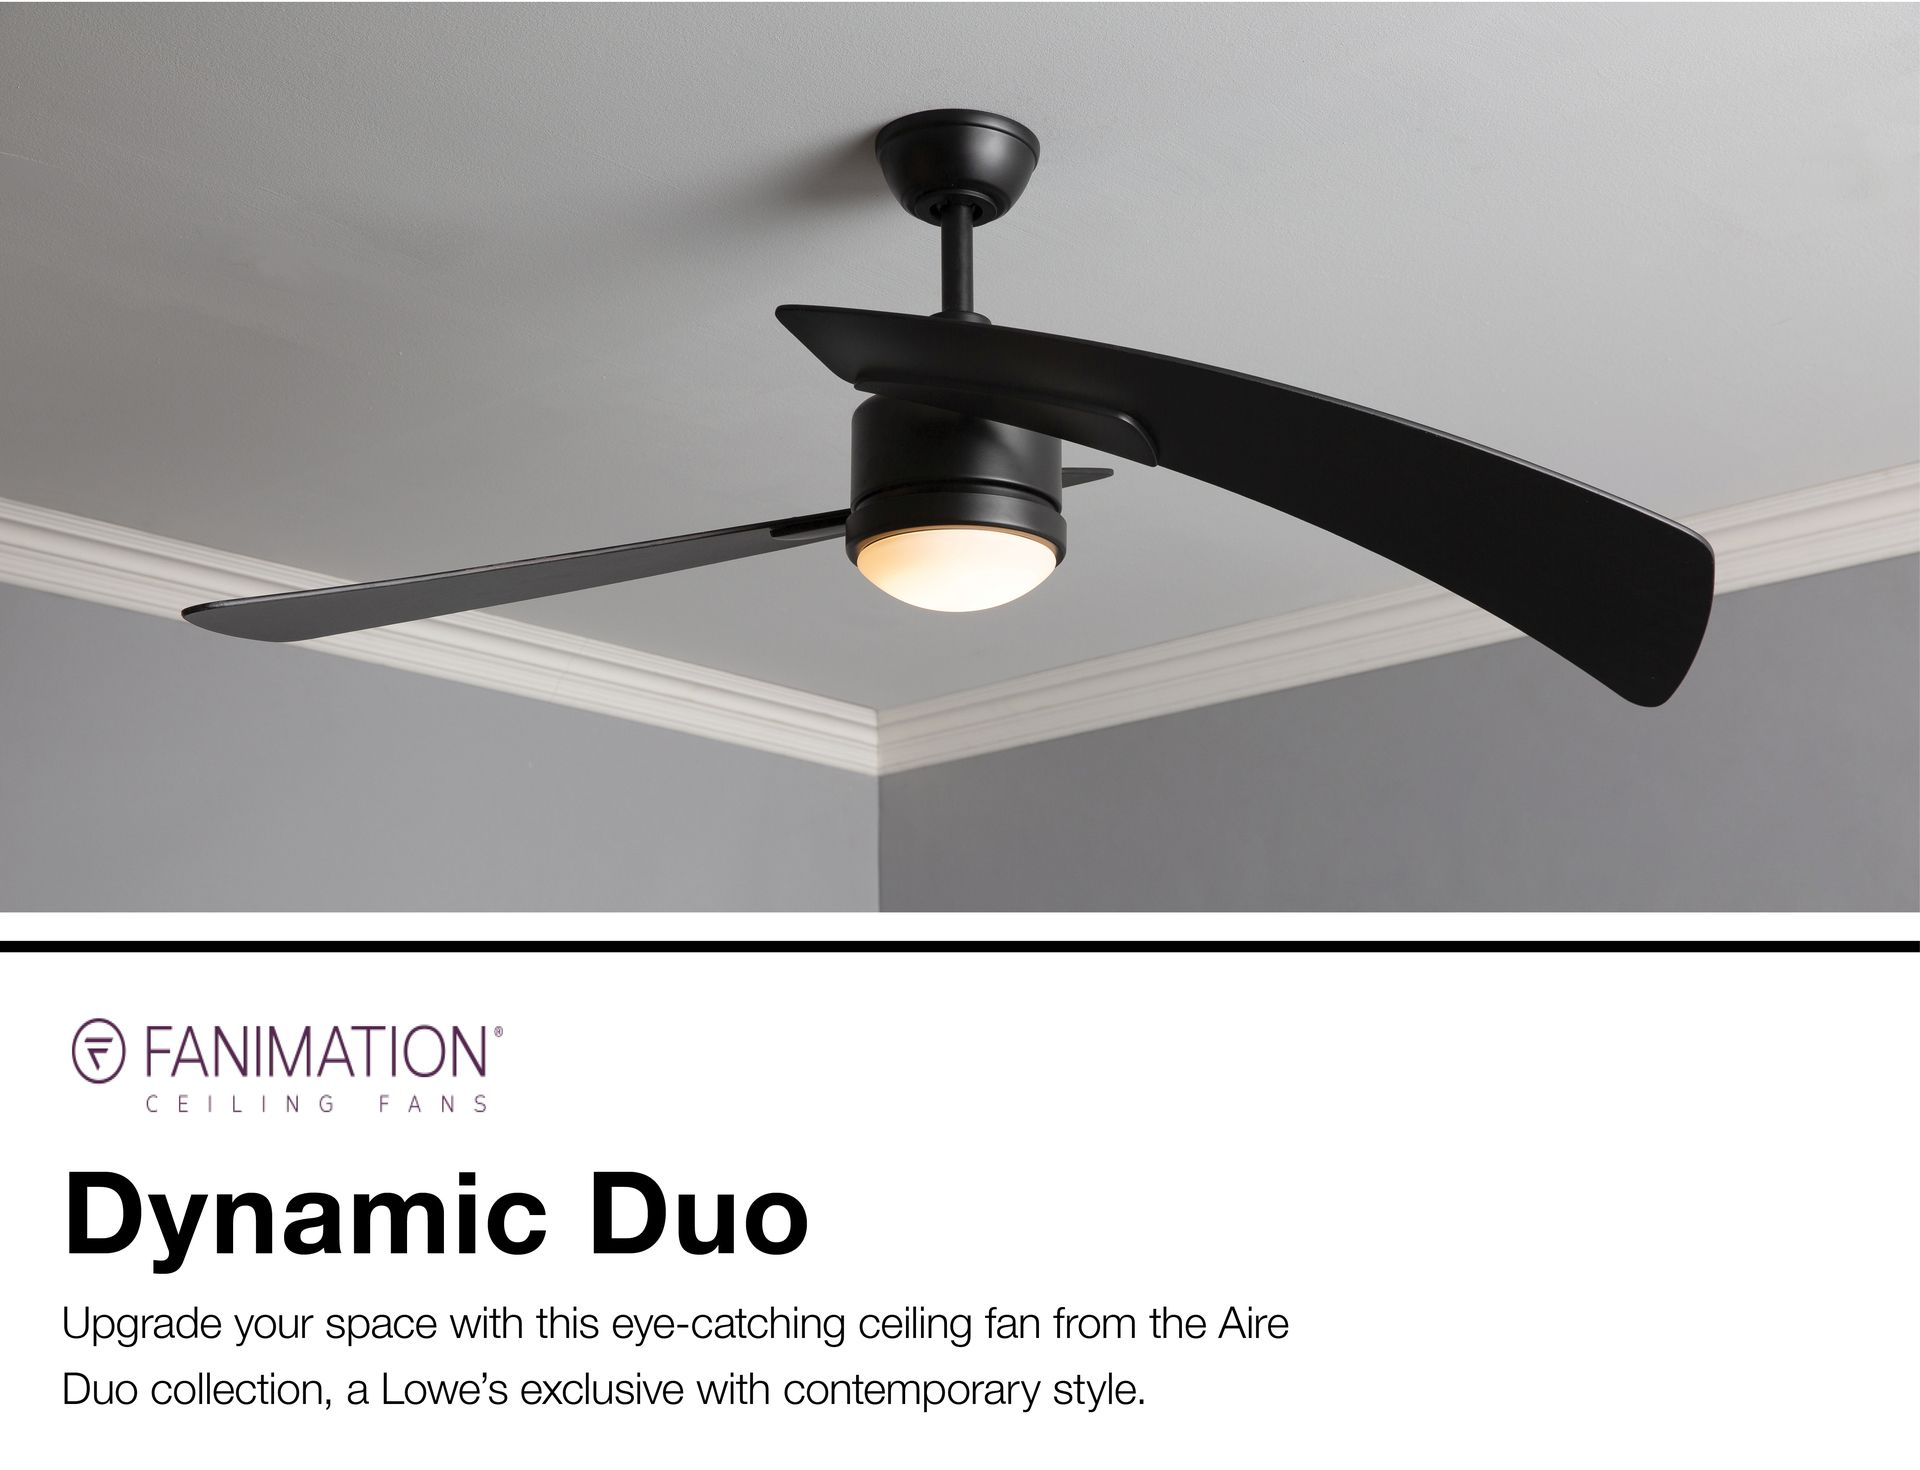 Fanimation Studio Collection Aire Duo 48 In Black Led Indoor Ceiling Fan With Light Kit And Remote 2 Blade At Lo Ceiling Fan With Light Ceiling Fan Fan Light